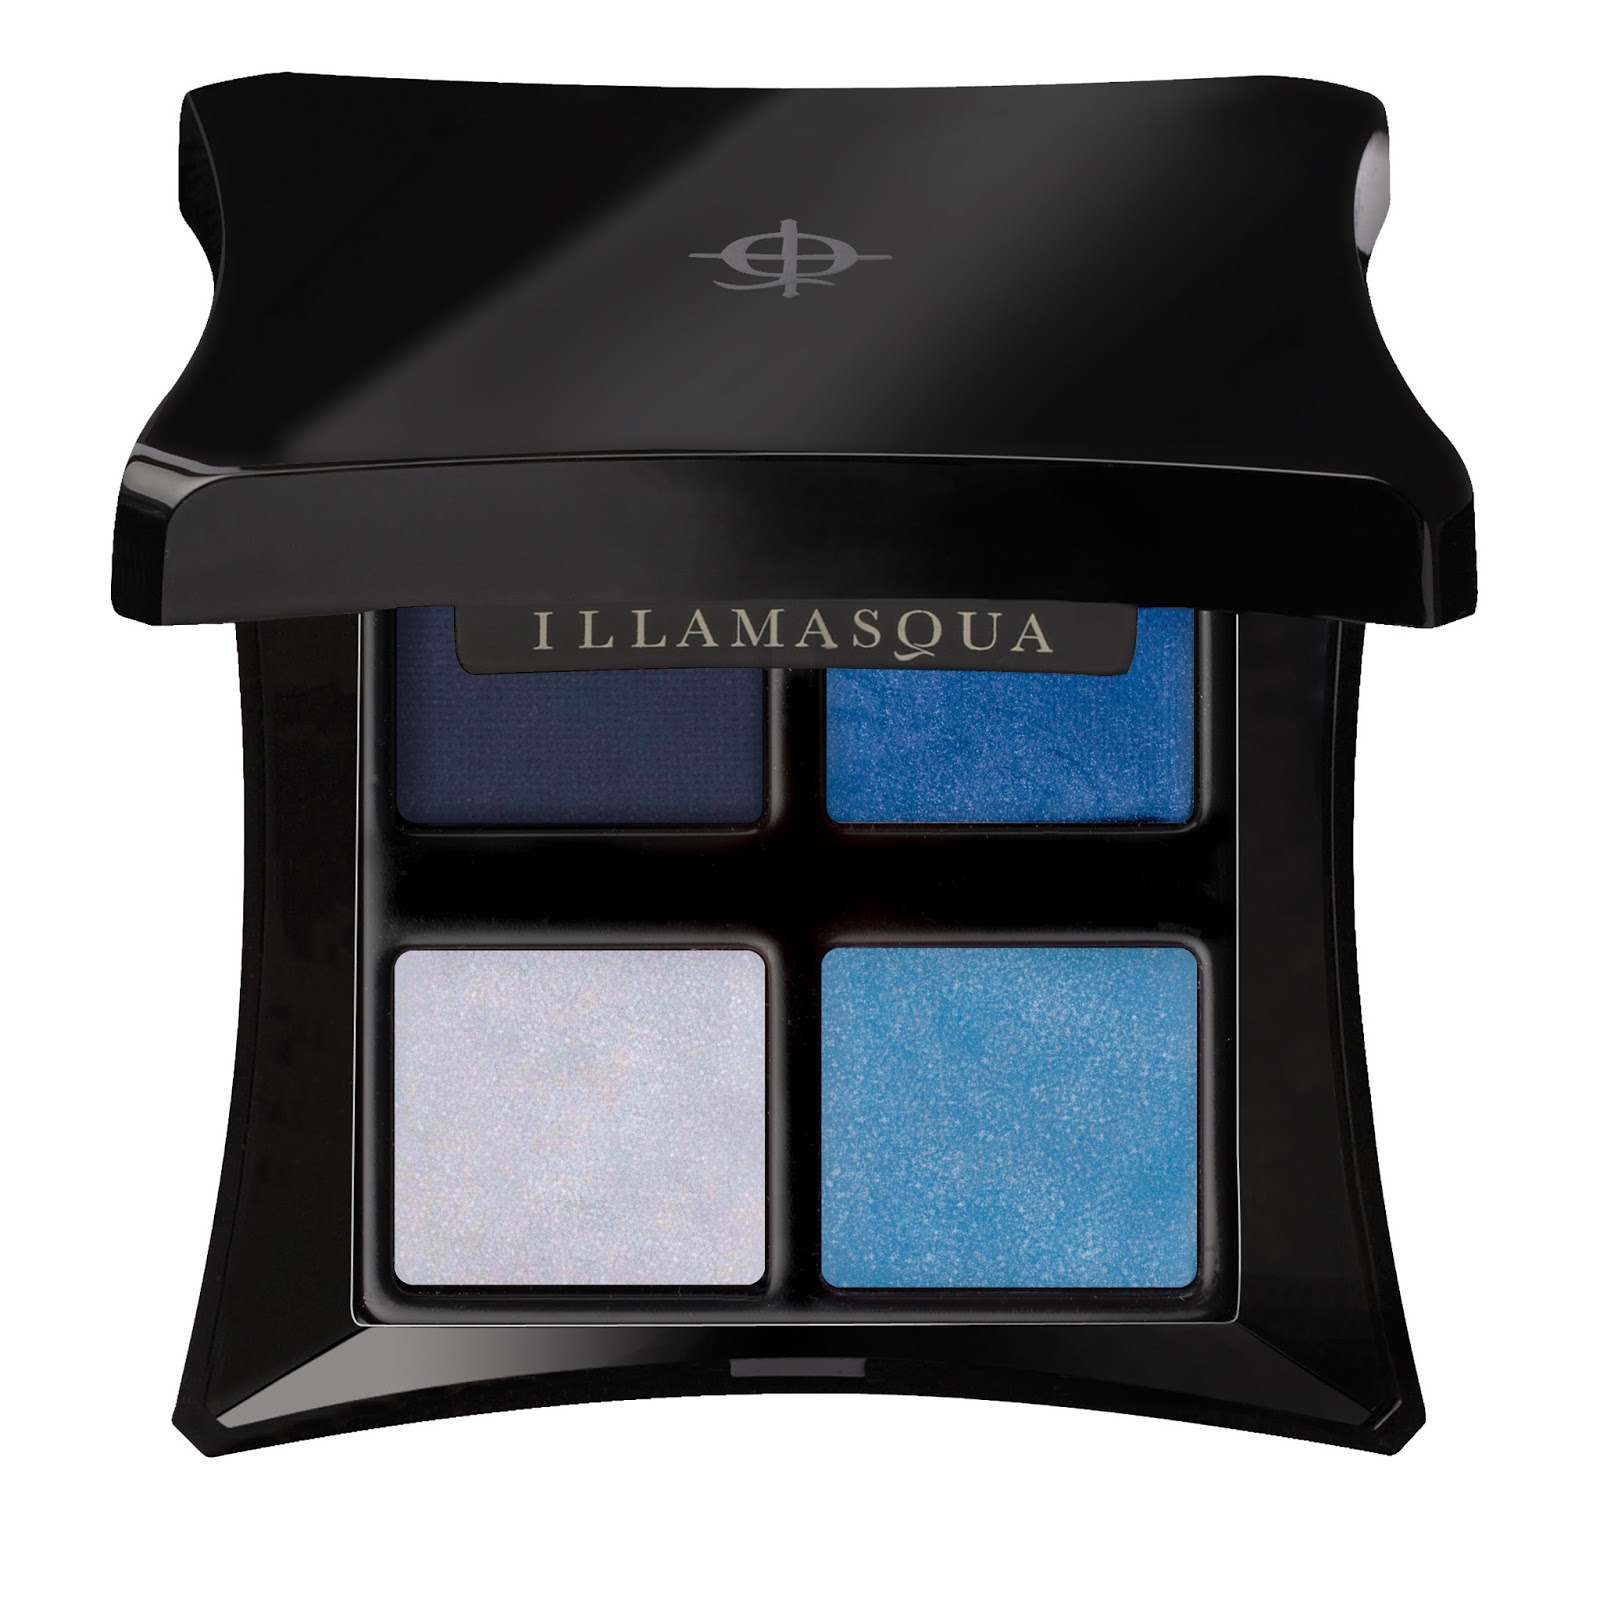 Illamasqua to be alive collection eye shadow palette